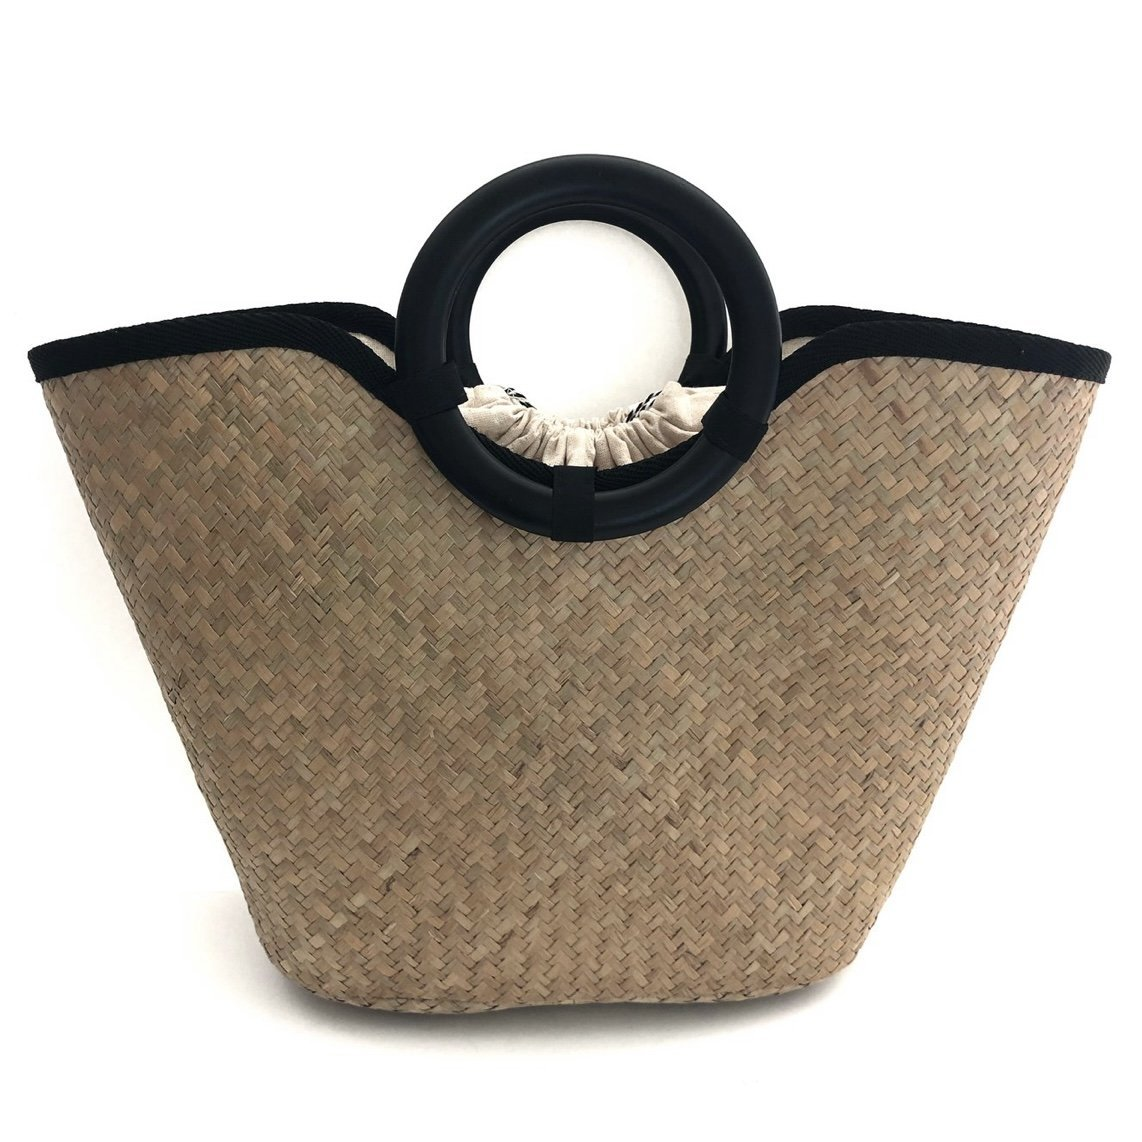 Rattan Bag with round handle - Inspired Evanston